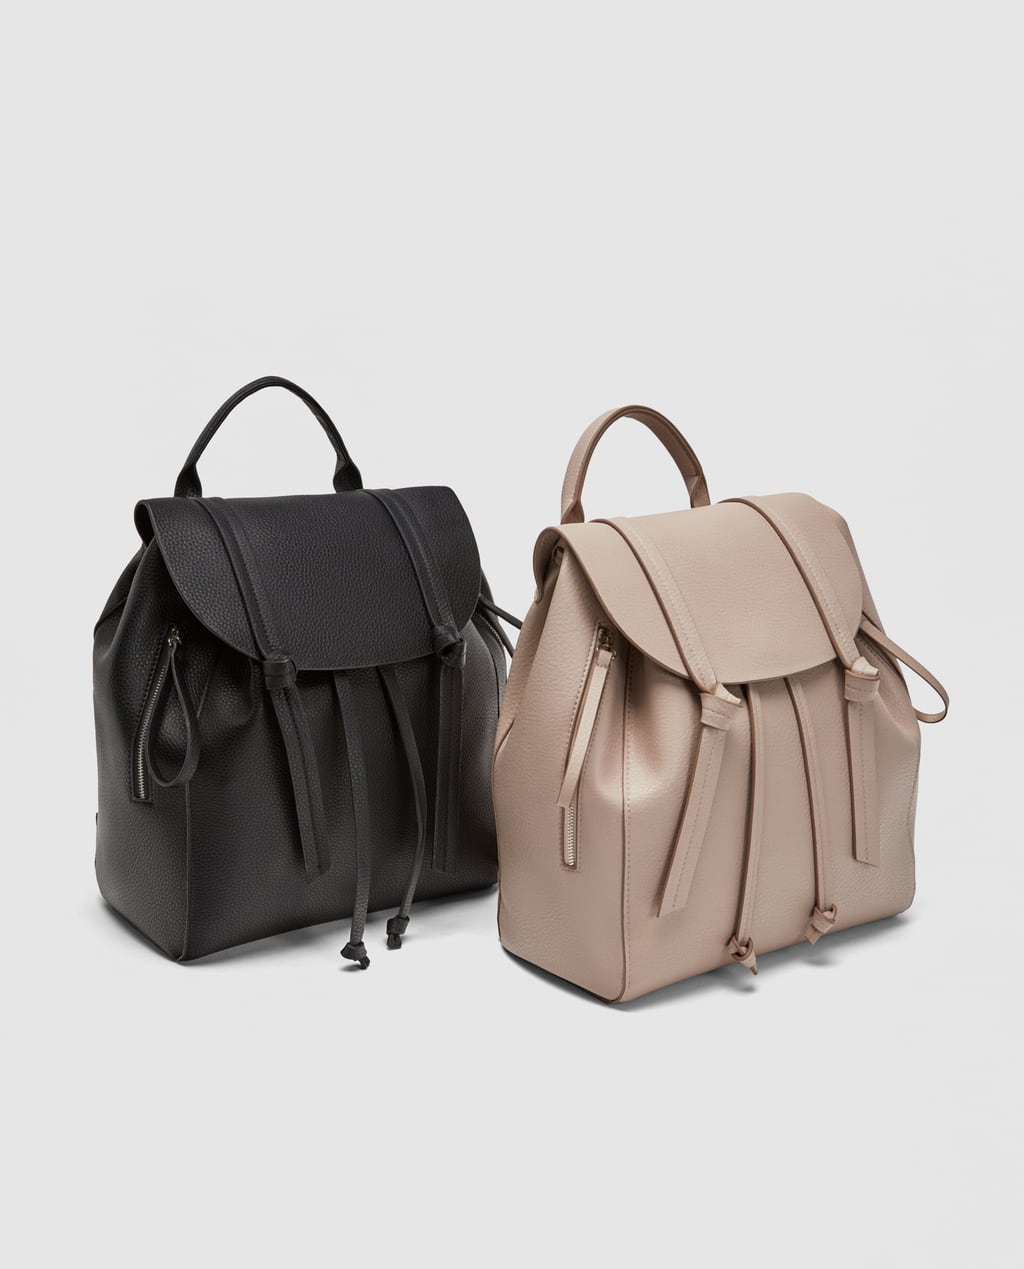 Monochrome Backpack by Zara